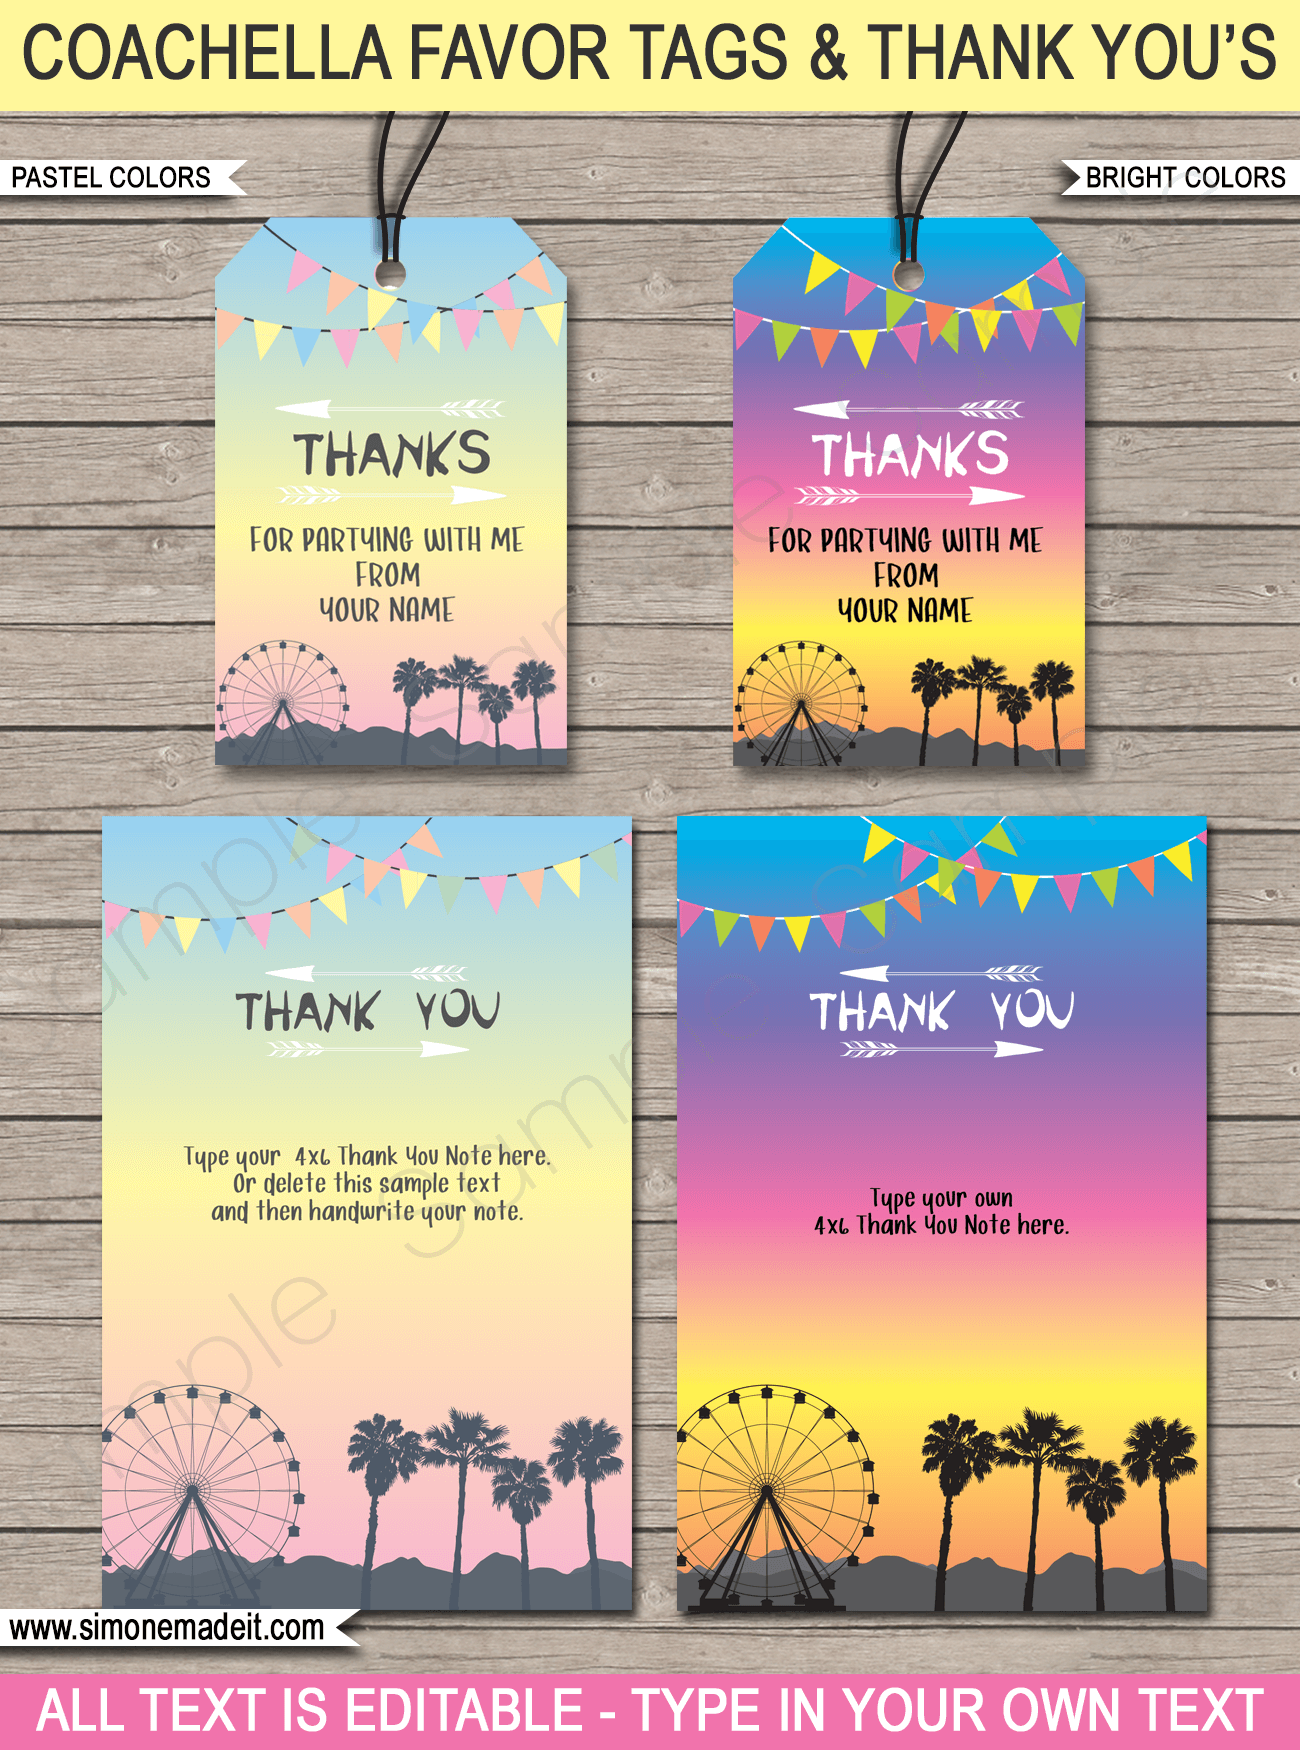 Coachella Birthday Party Favor Tags & Thank You Notes | Editable & Printable Templates | Coachella Themed | Coachella Inspired | Music Festival